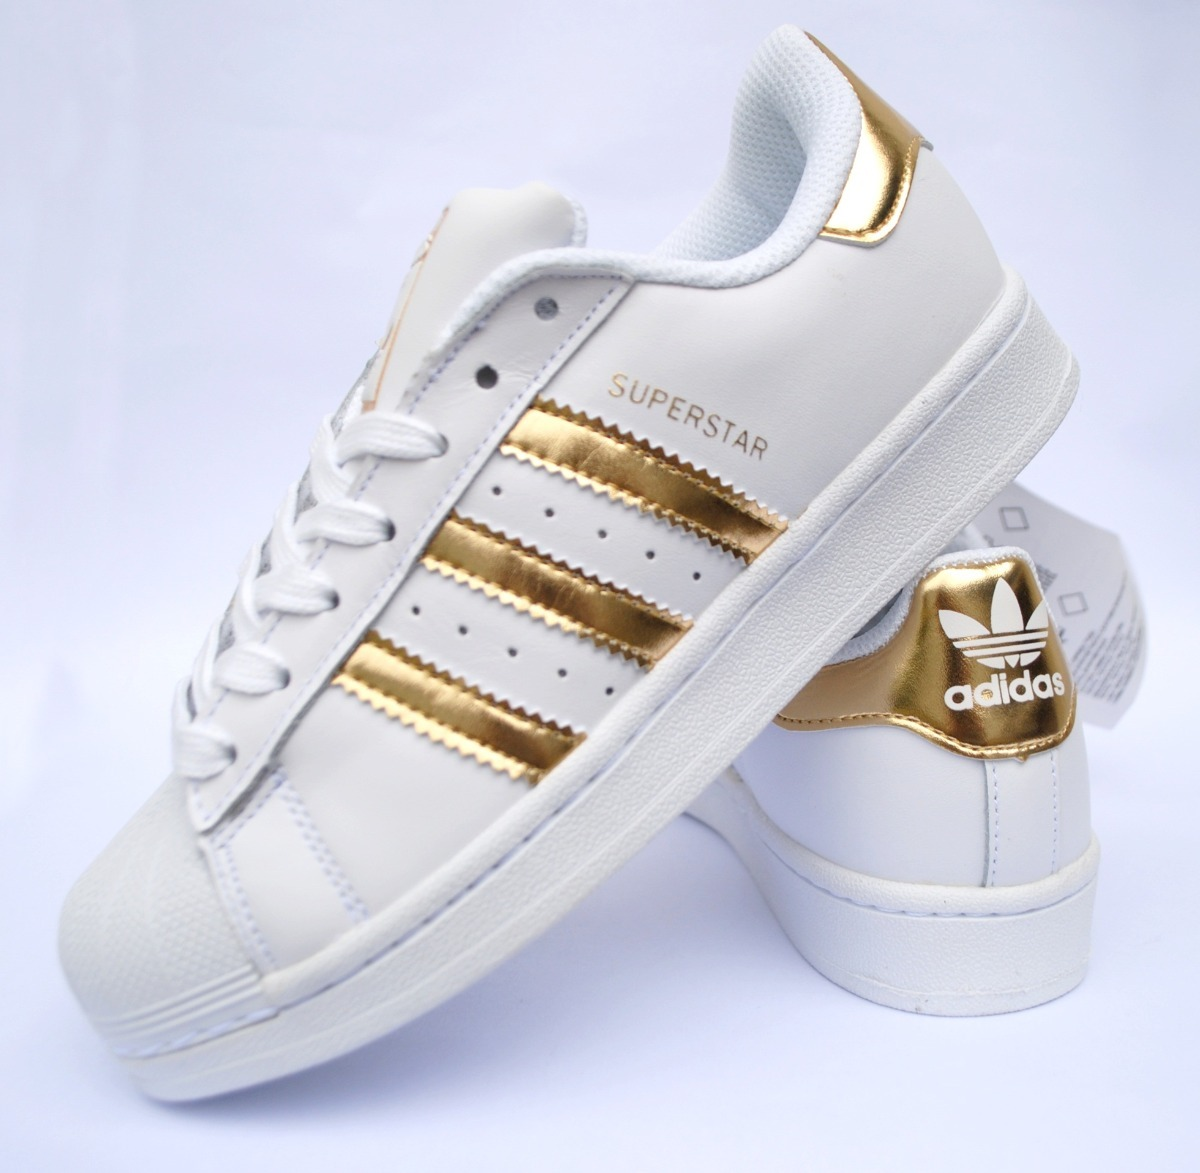 bc75b71794f1b Zapatillas adidas Superstar Blanco Dorado